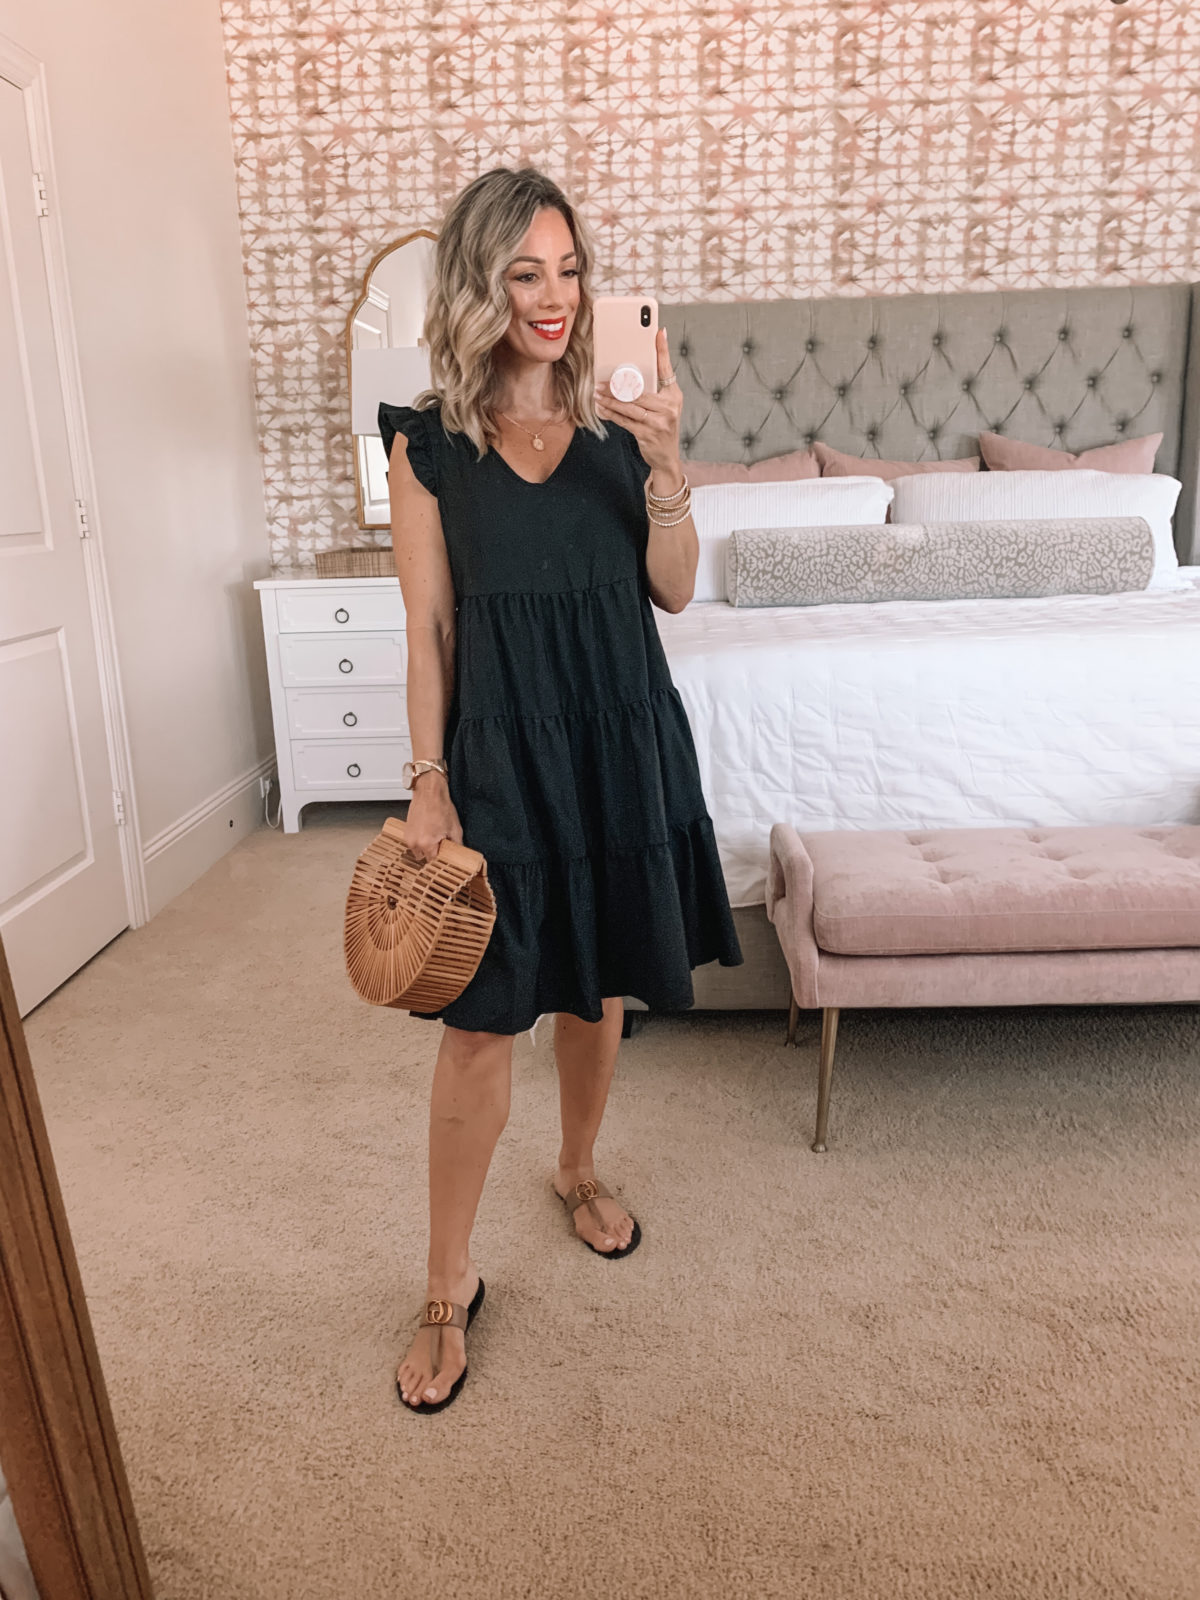 Amazon Fashion Faves, Black Baby Doll Dress And Sandals